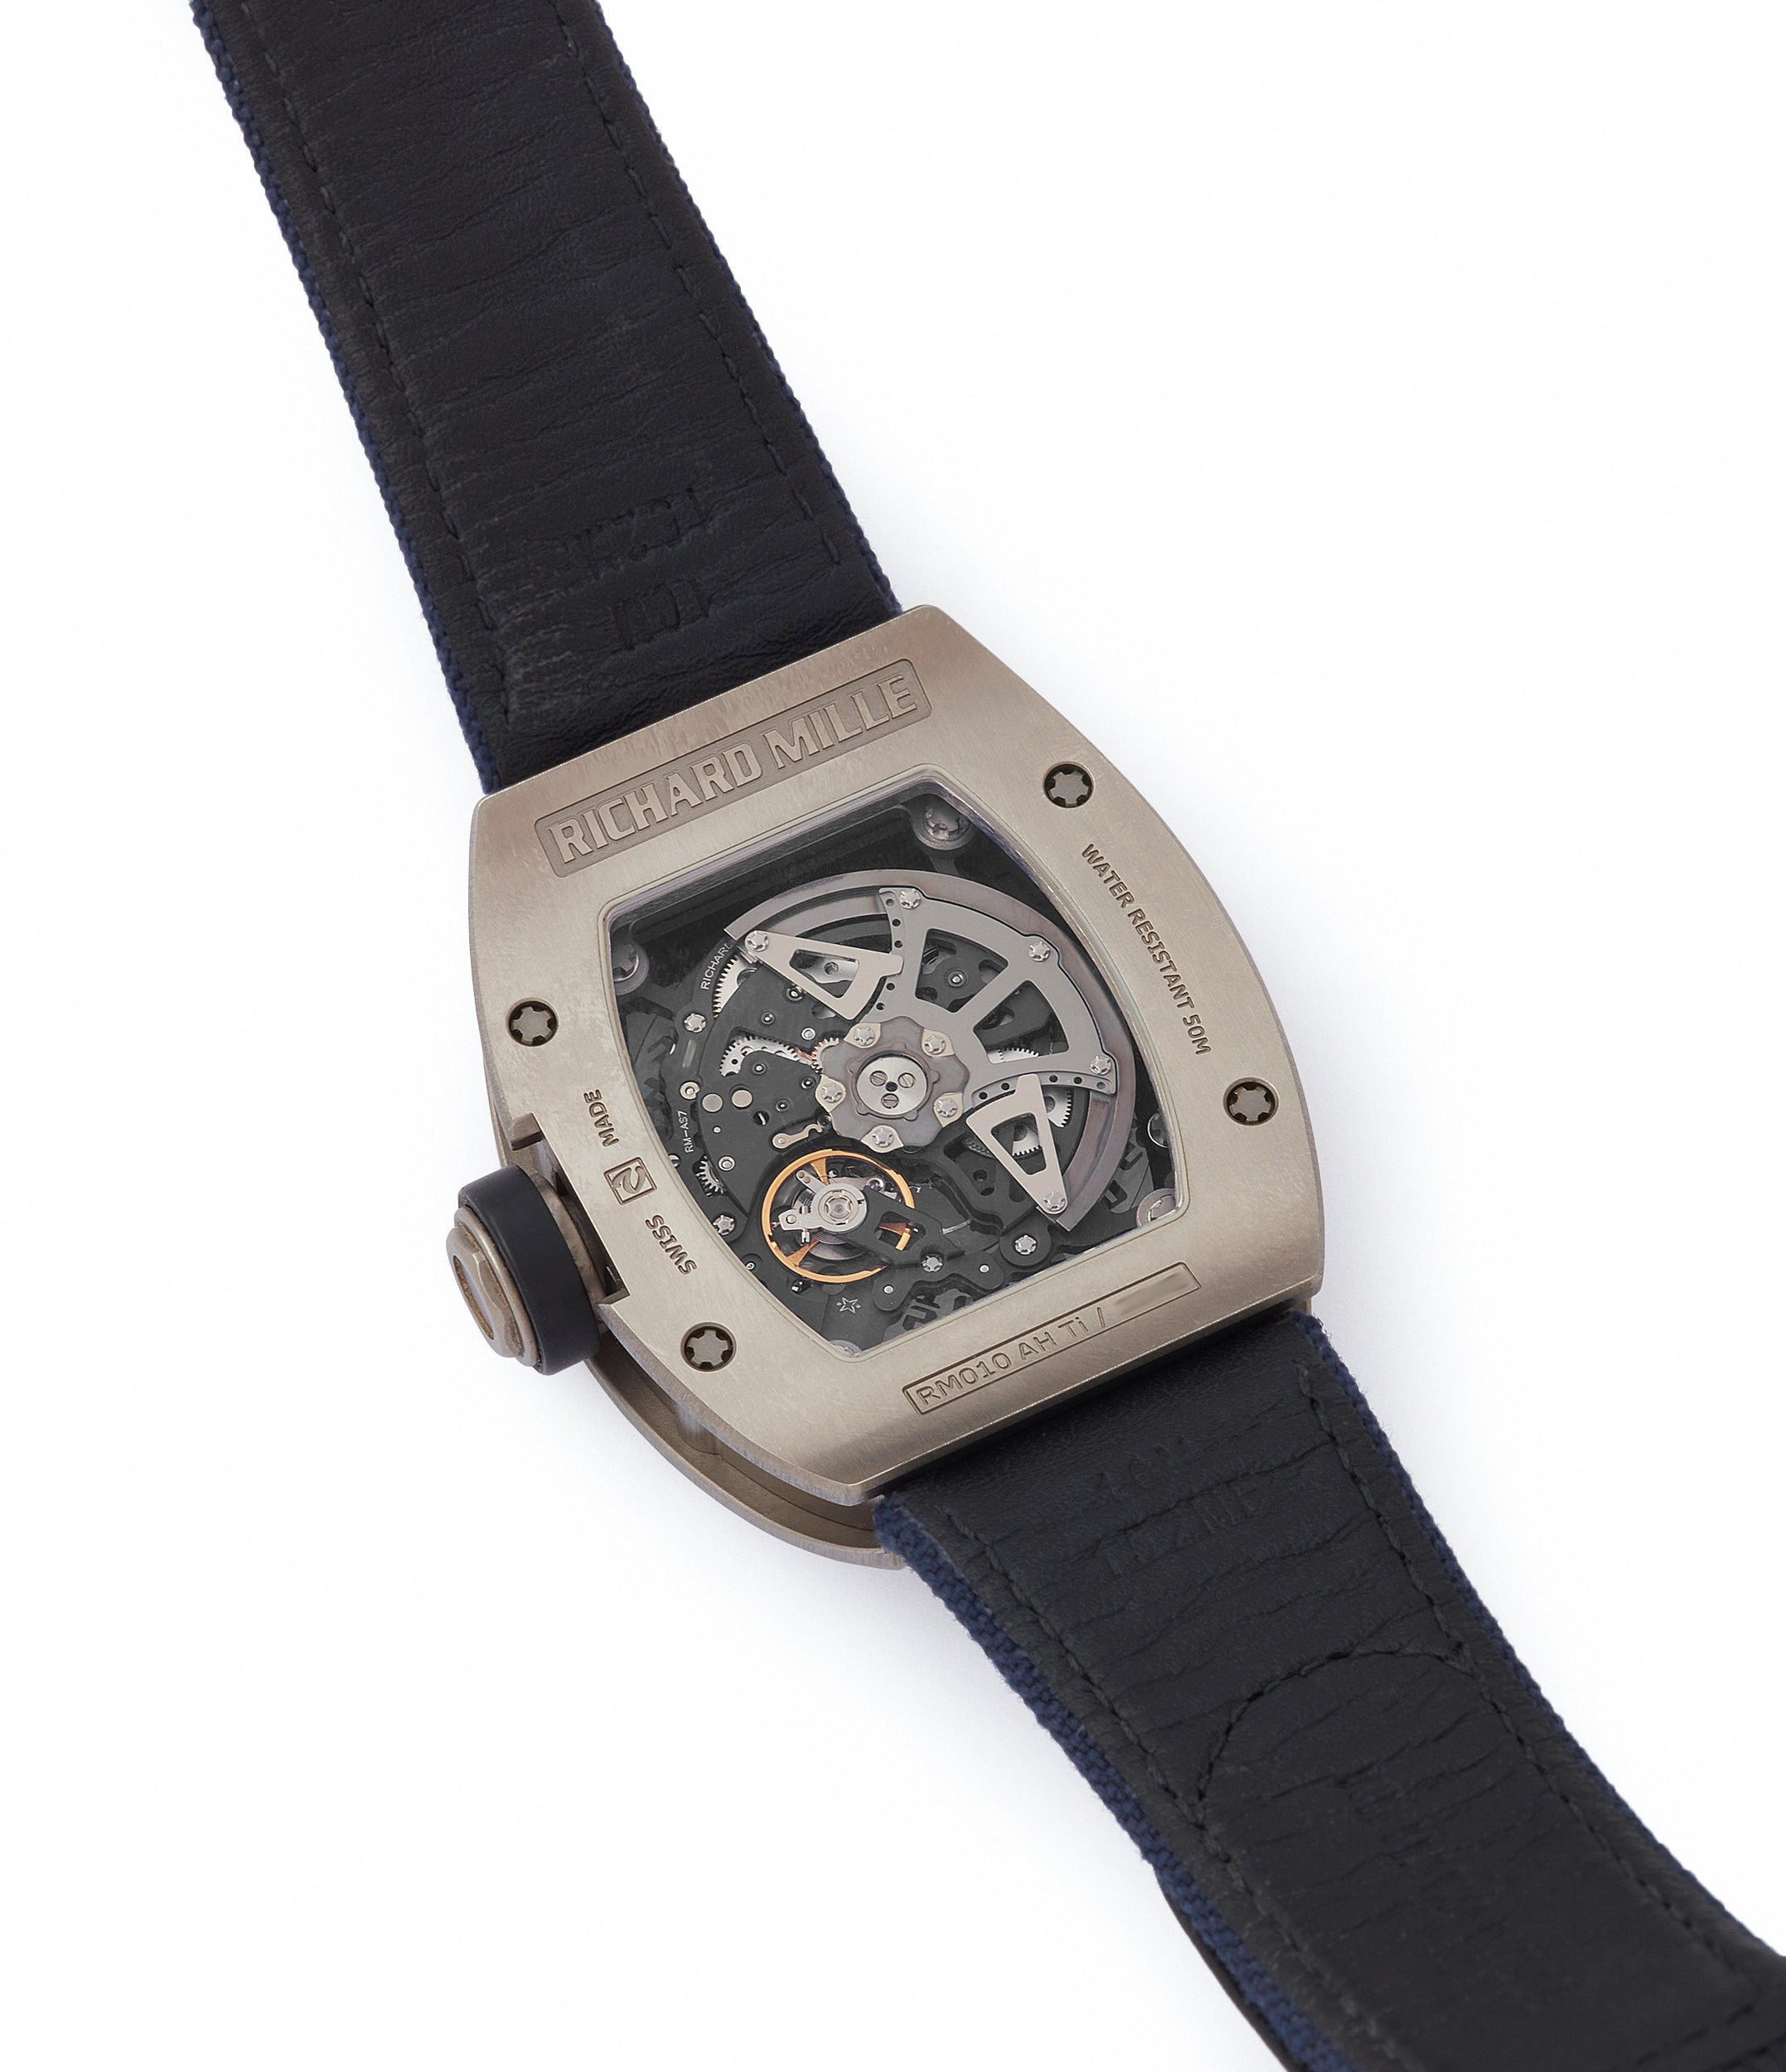 shop Richard Mille RM010 titanium rare luxury sport watch by independent watchmaker for sale online at A Collected Man London UK specialist of rare watches